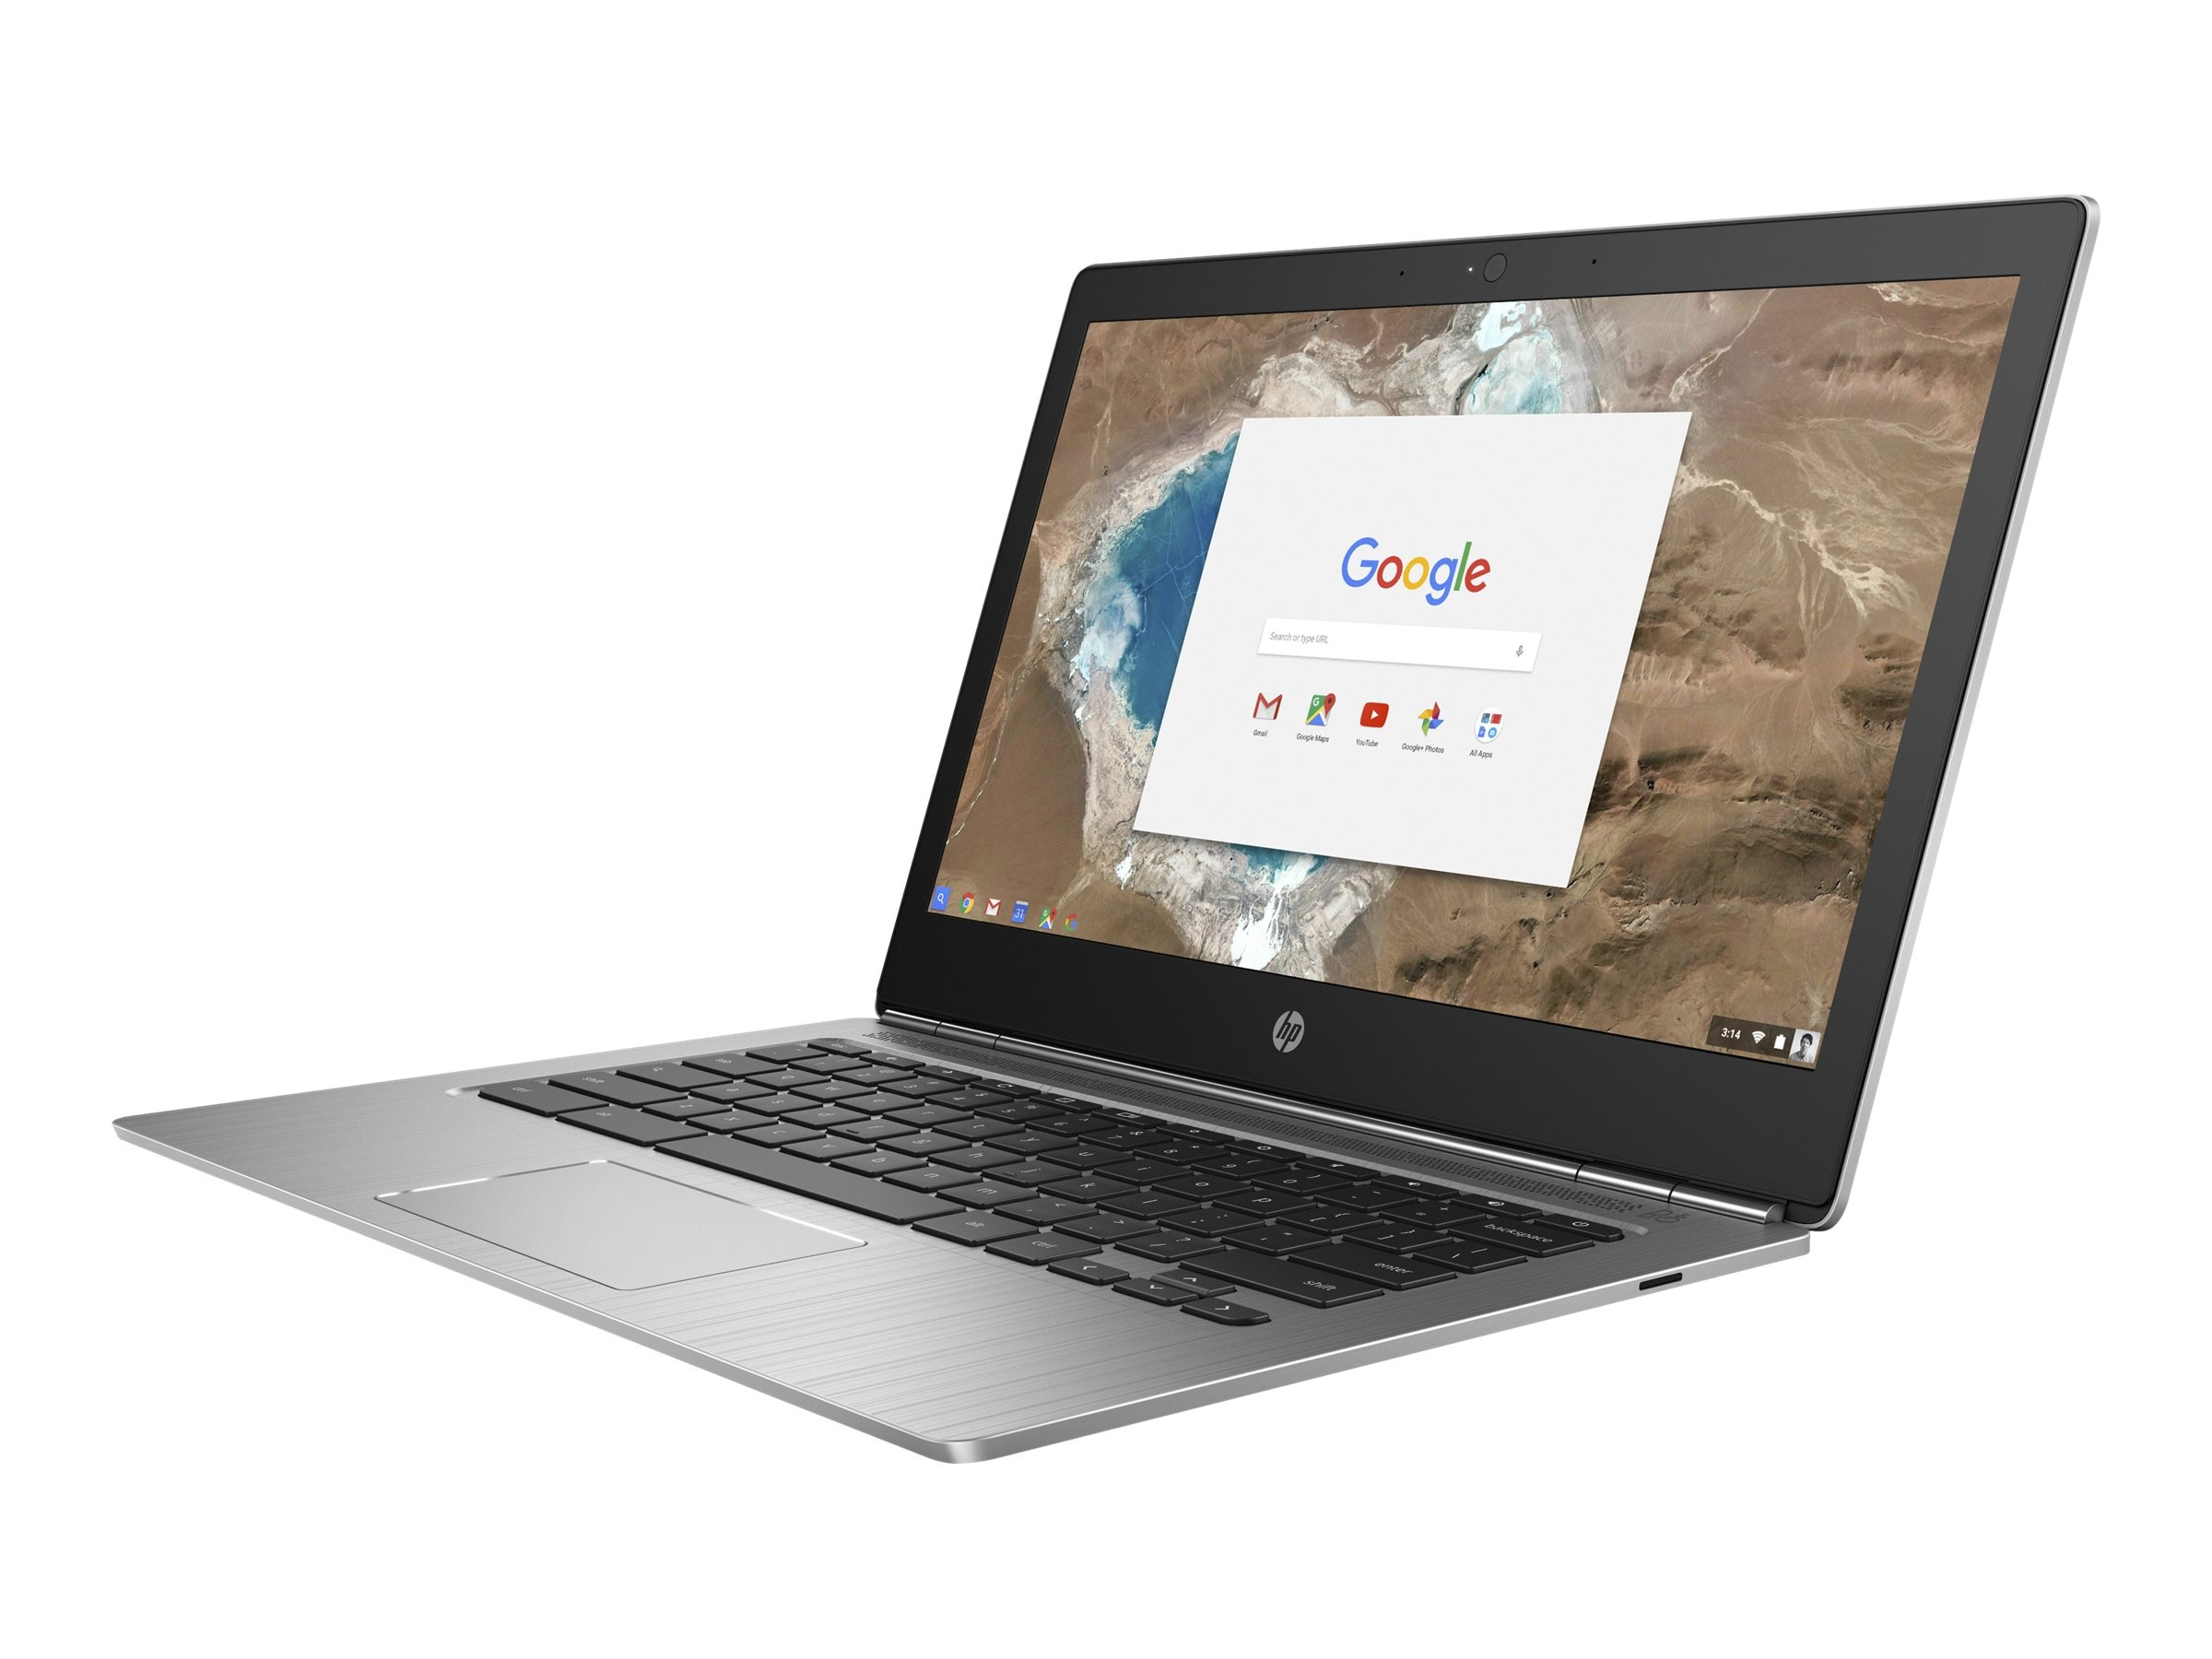 HP Chromebook 13 G1 0.9GHz Core m3 13.3in display